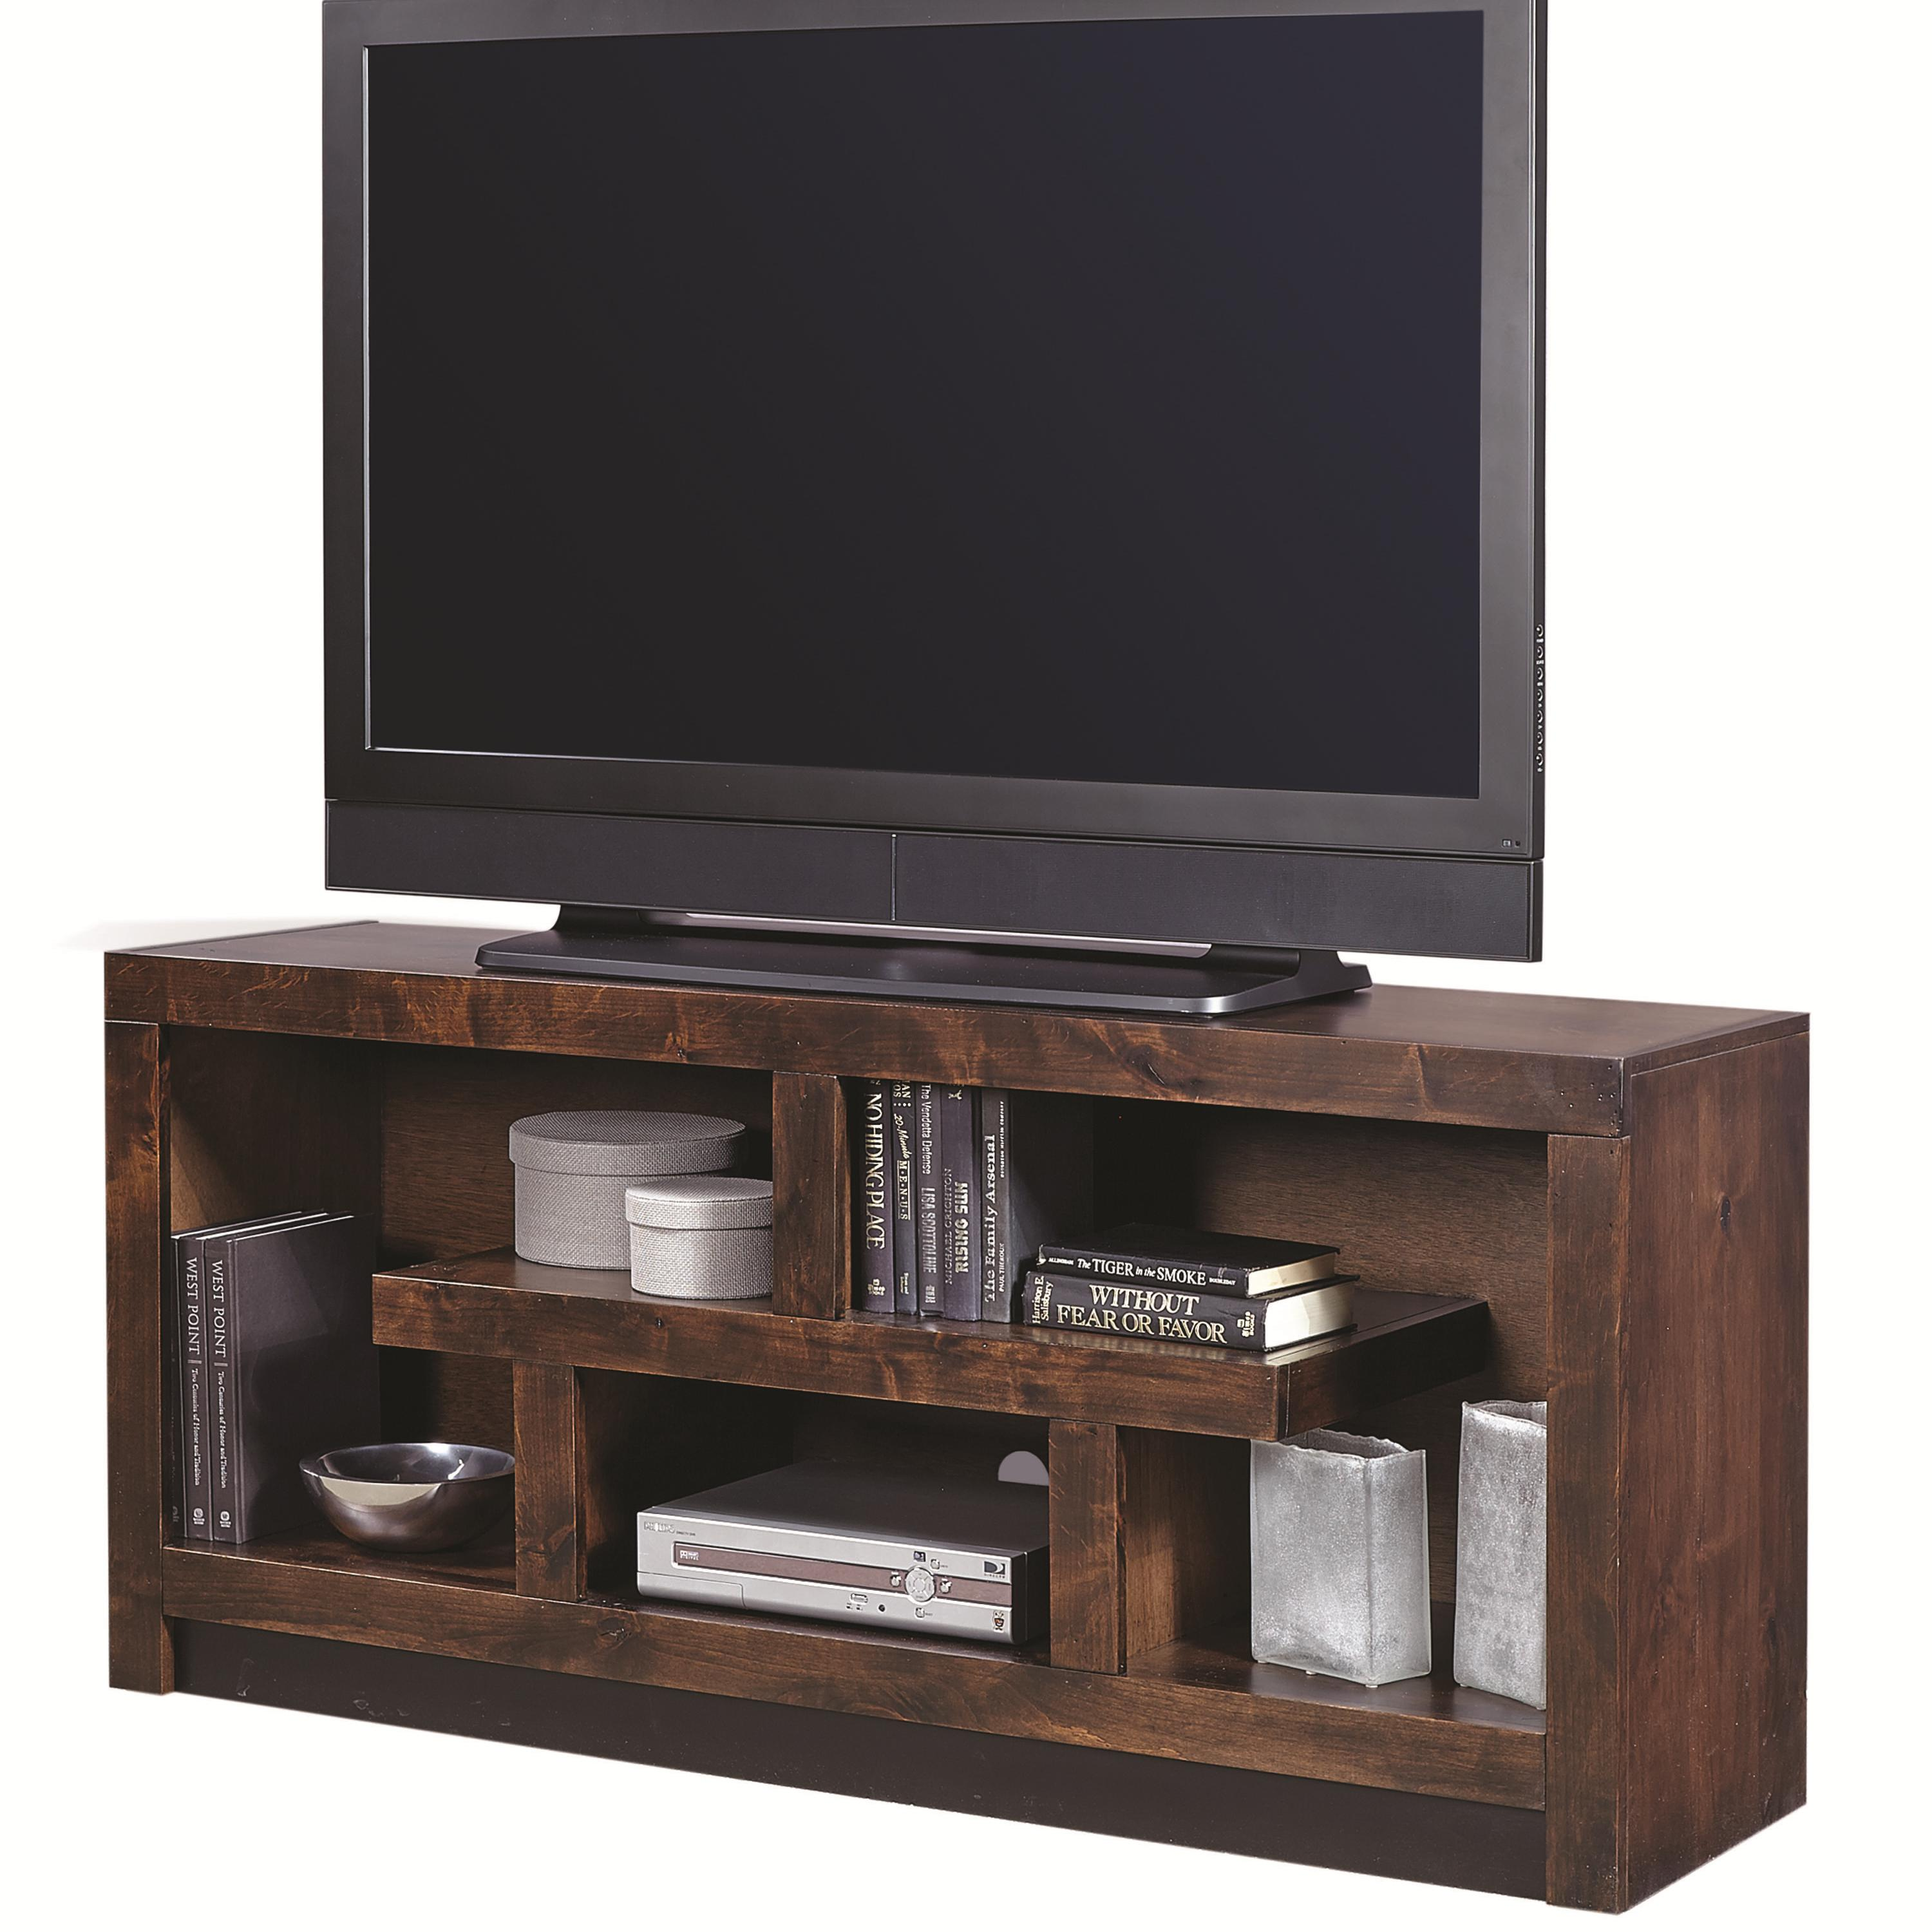 Contemporary Alder 60 Inch Console by Aspenhome at Walker's Furniture